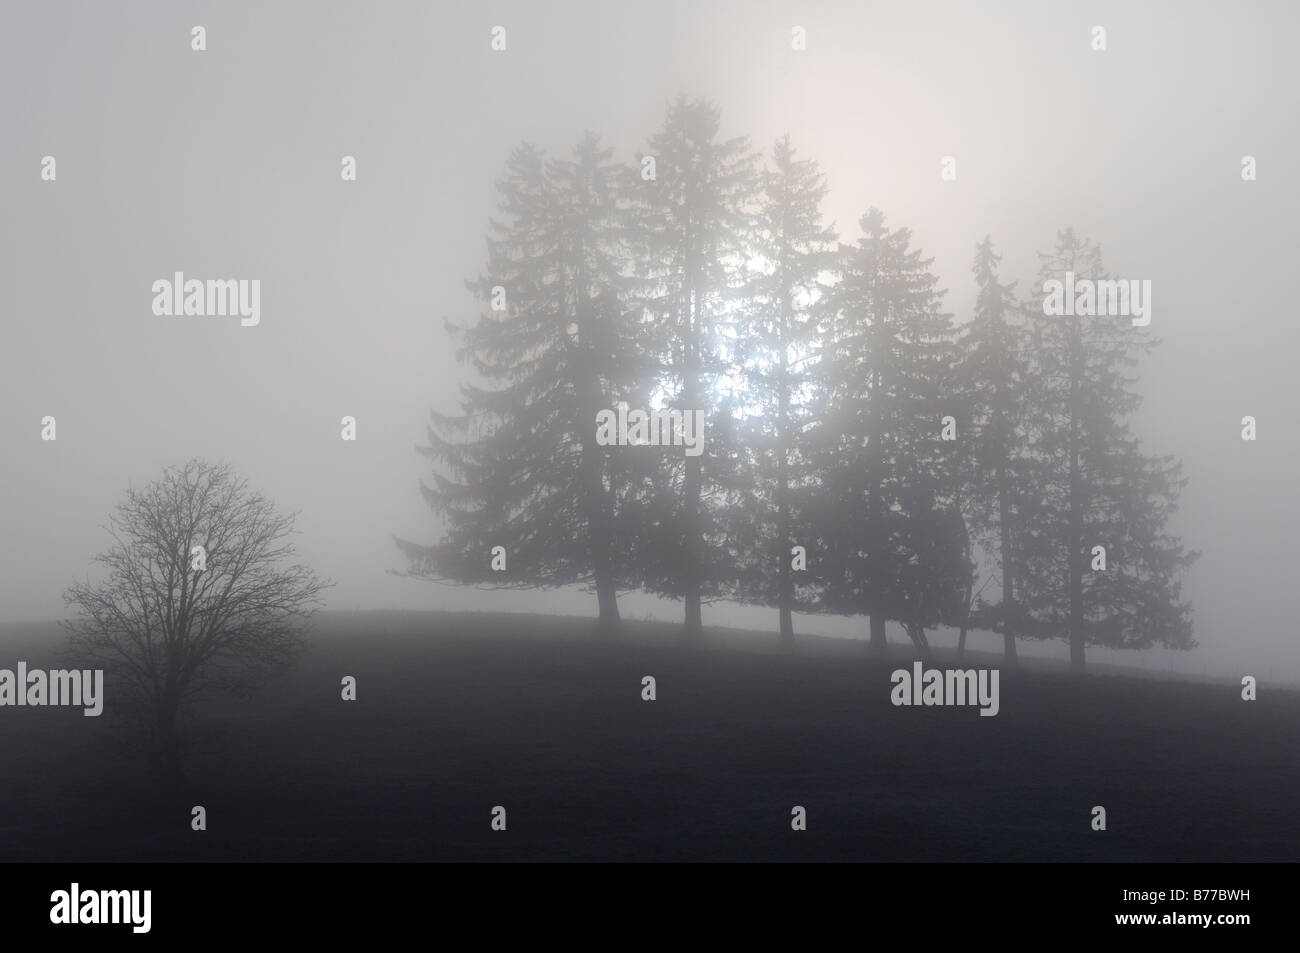 Spruces (Picea abies) in fog, Allgaeu, Bavaria, Germany, Europe - Stock Image